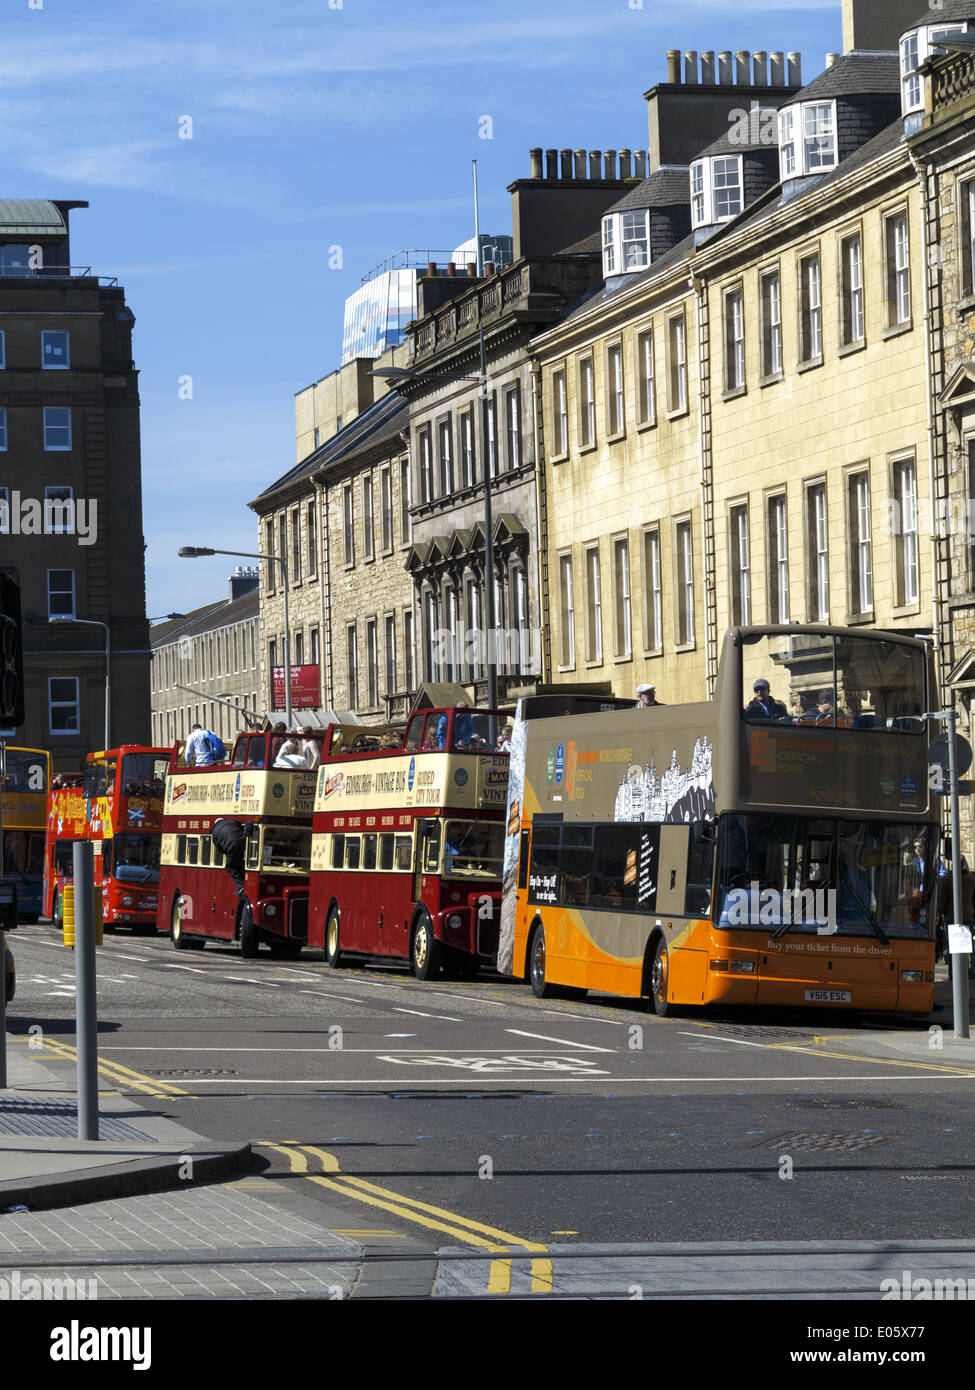 Open topped tourist buses at St Andrew Square Edinburgh Scotland - Stock Image